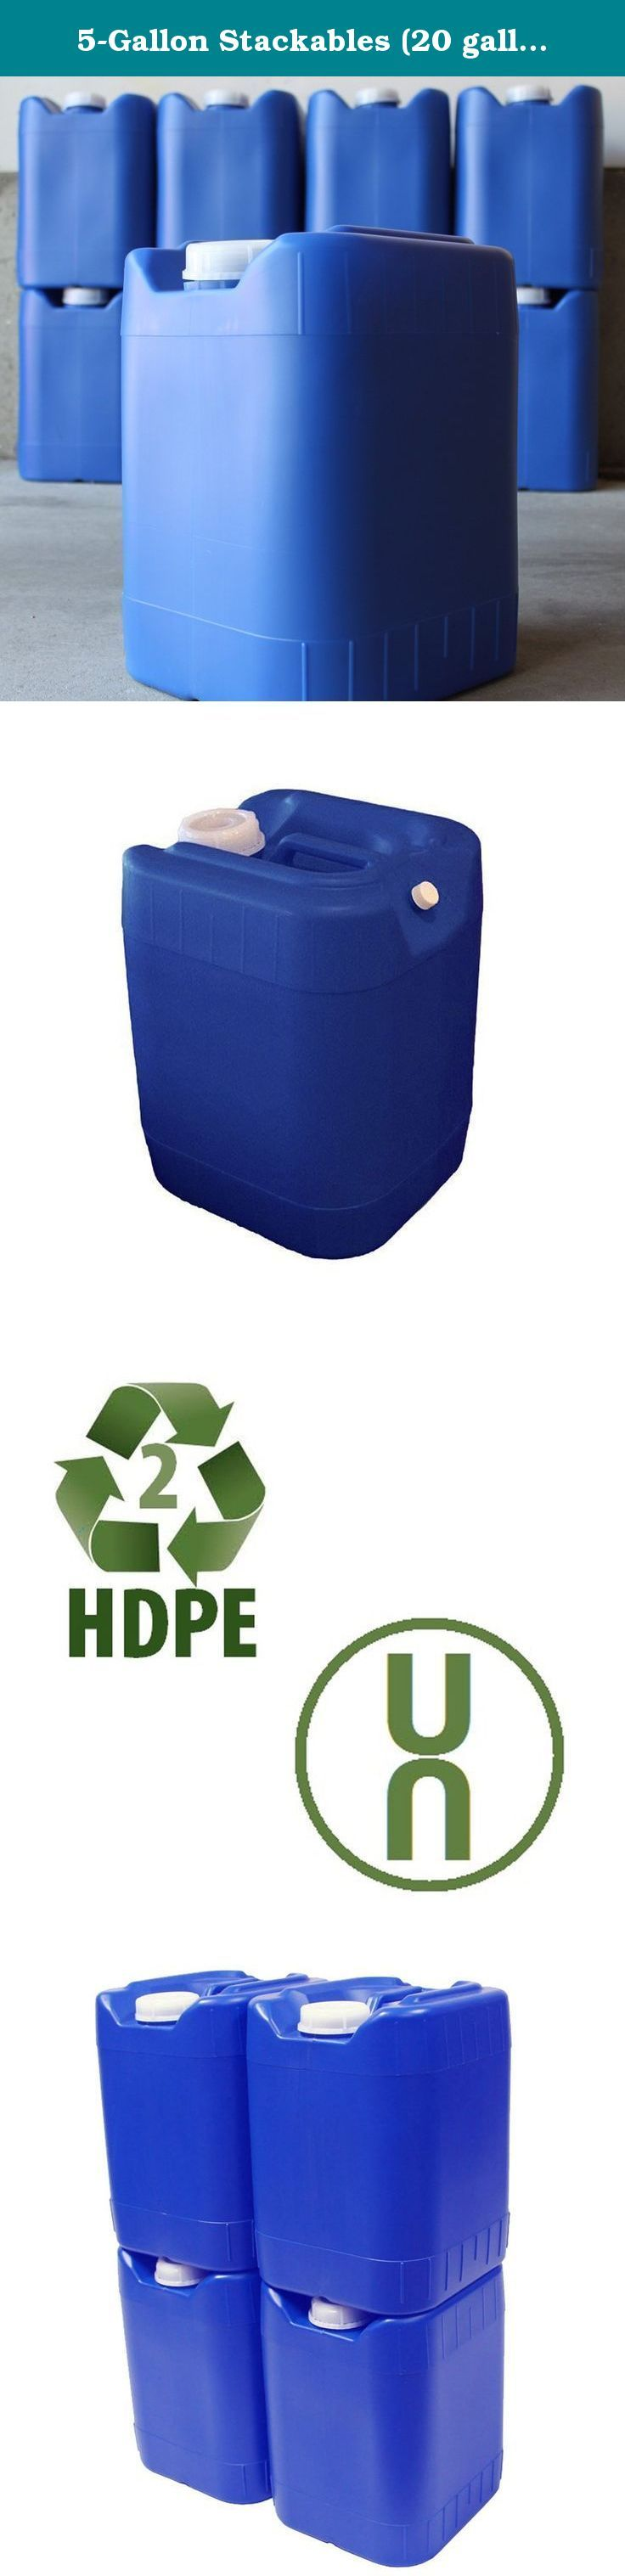 7cdddceb2561ae8317c0cf6ac1843017  water containers storage containers Top Result 53 Best Of Portable Water Tanks Photos 2018 Kdh6